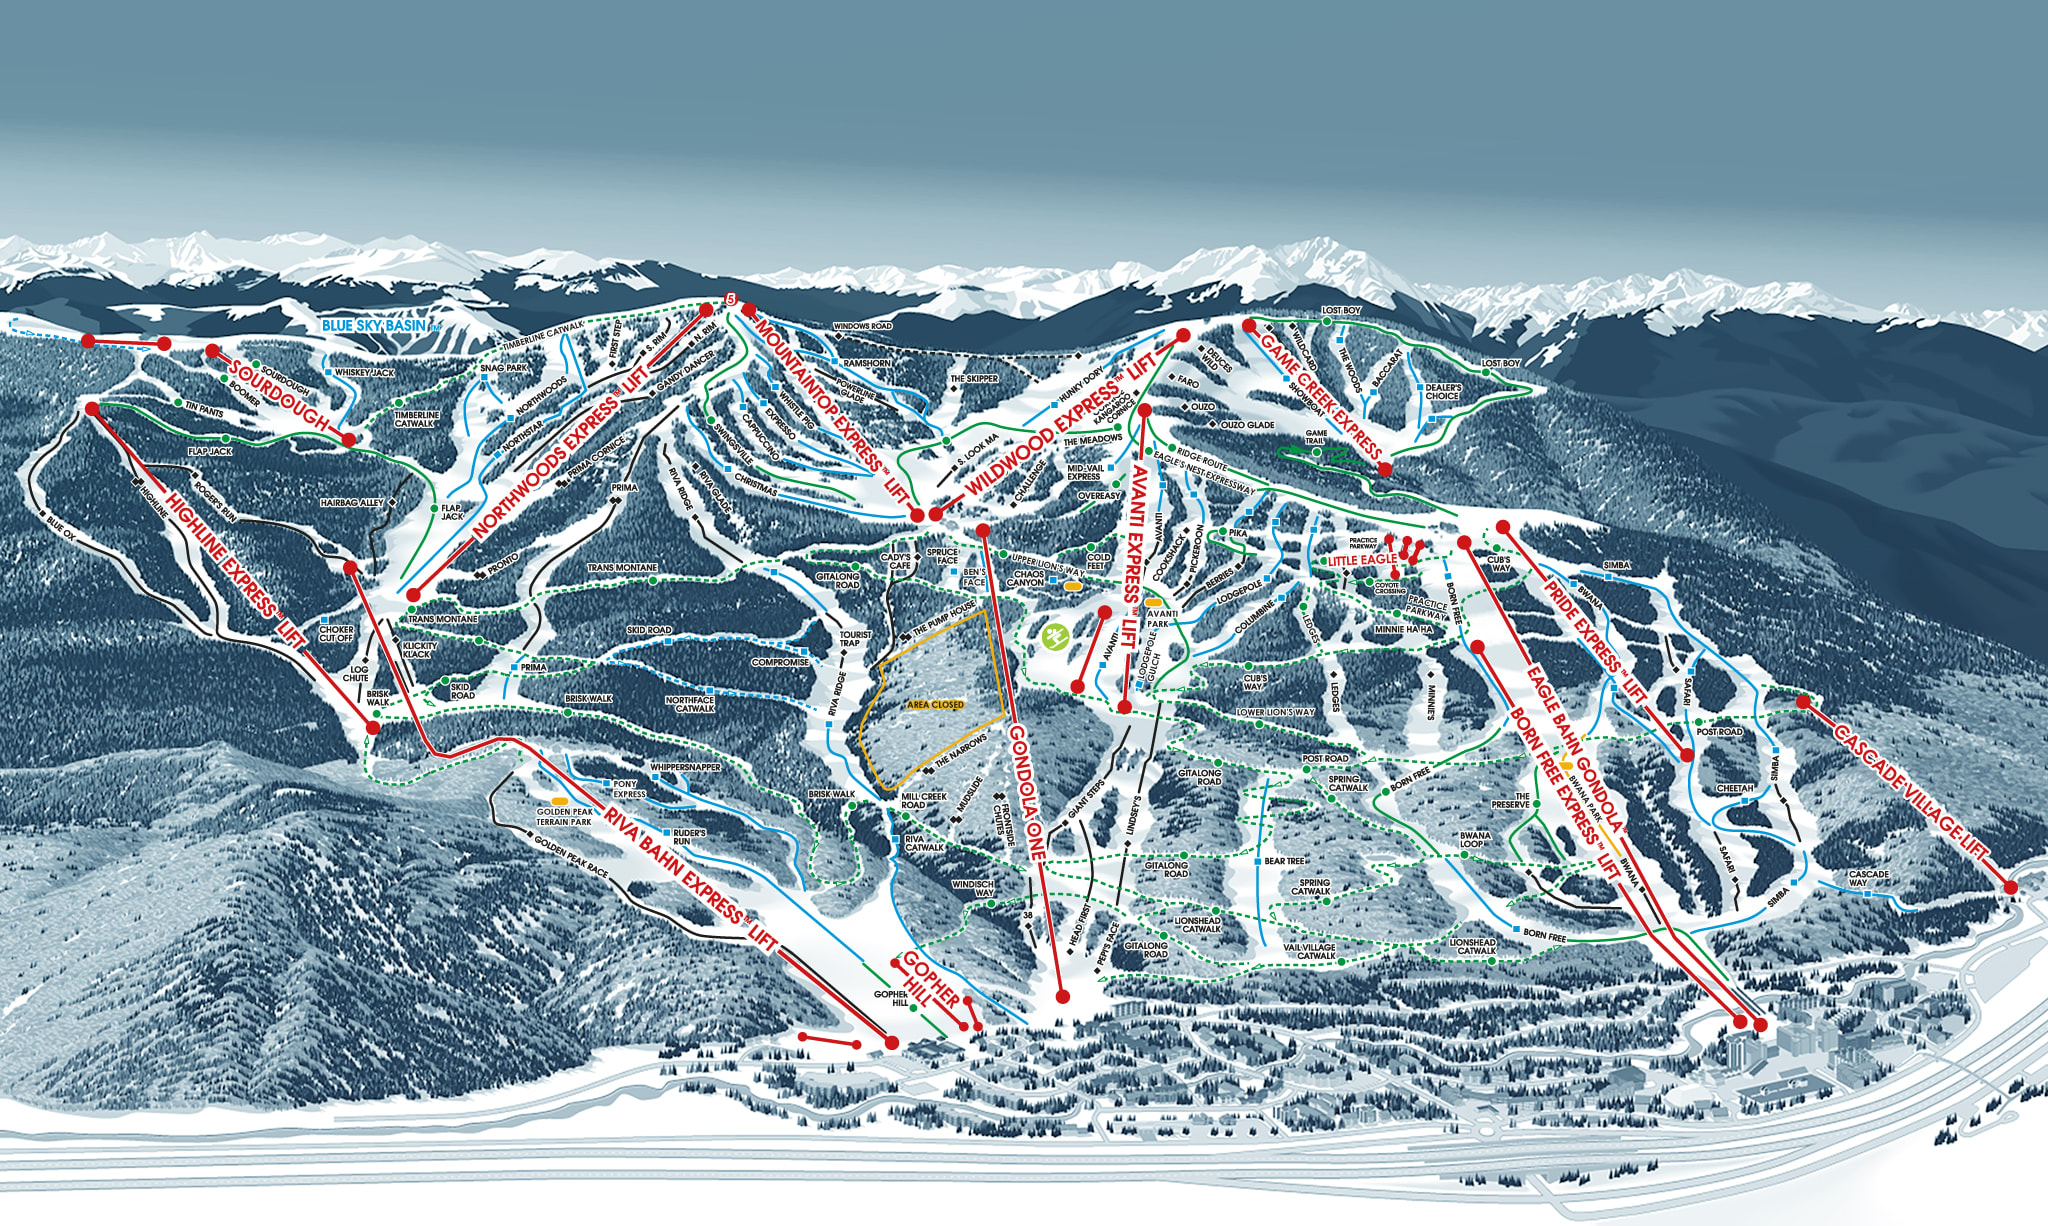 Vail Mountain Map Vail Trail Map | Vail Ski Resort